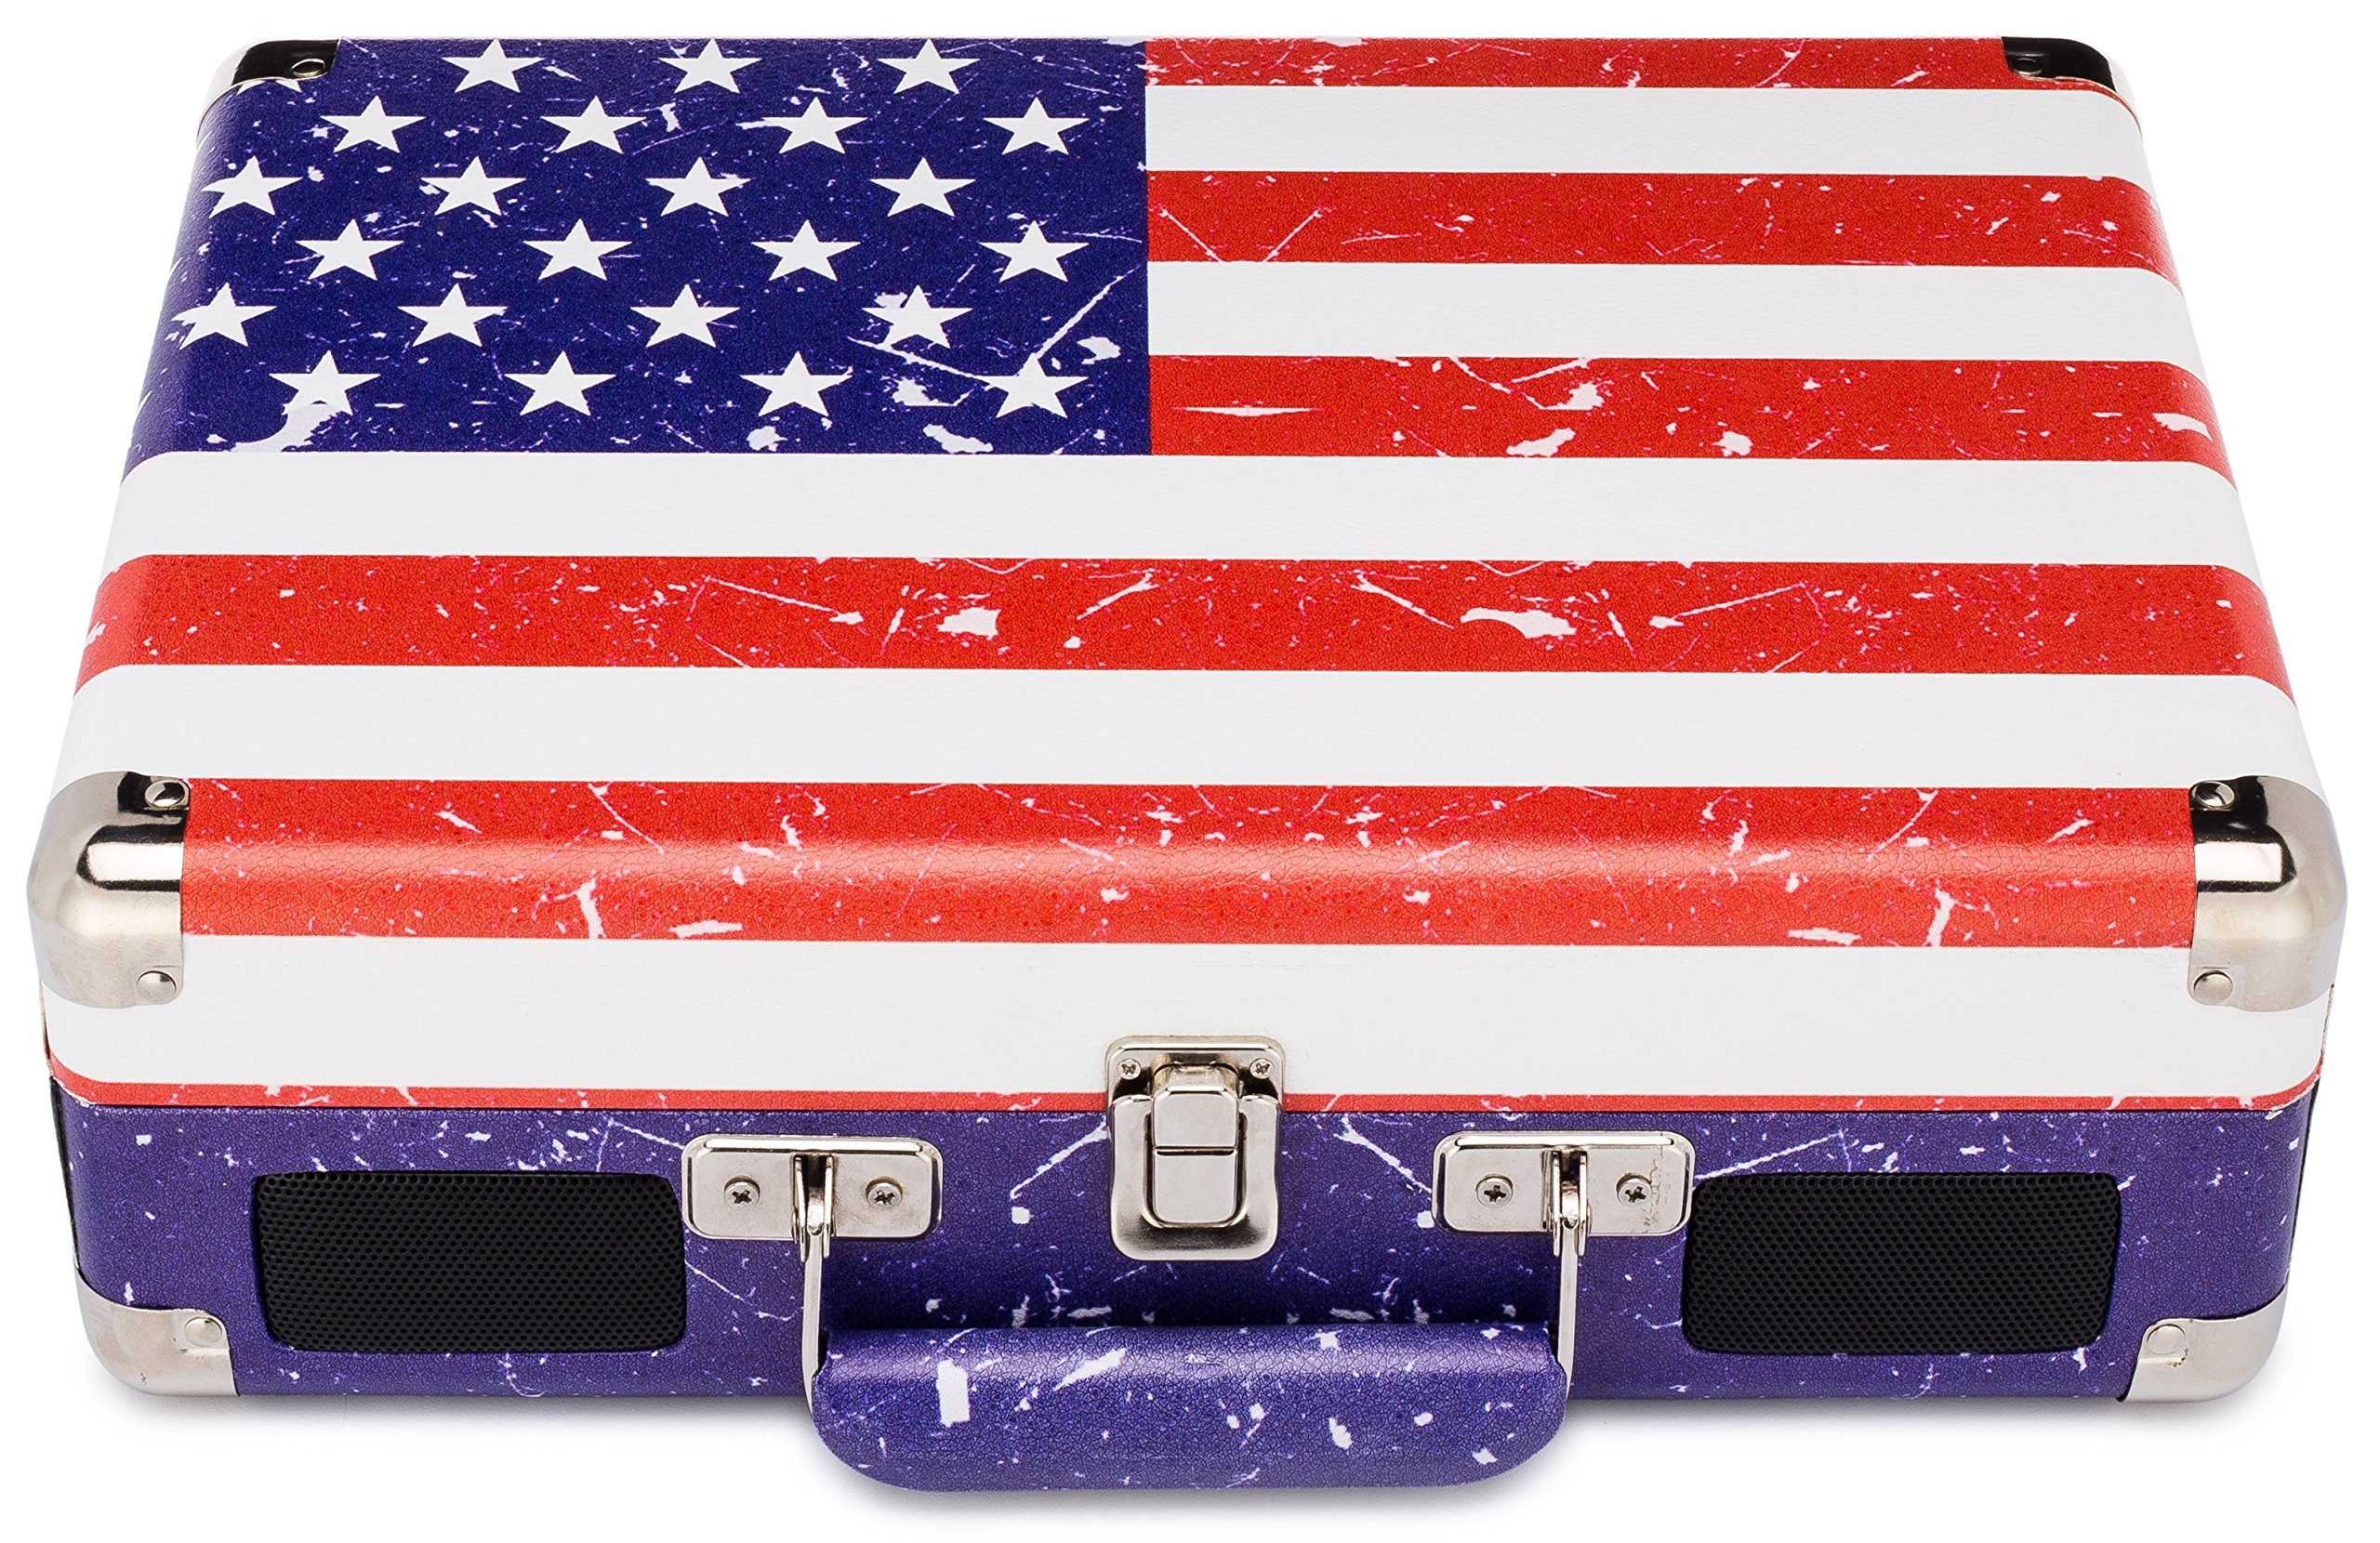 ClearClick Portable 3-Speed Vintage Suitcase/Briefcase Turntable (USA Flag Design) - Vinyl Record Player with Speakers, USB-Out, & MP3 Audio Recording/Editing Software